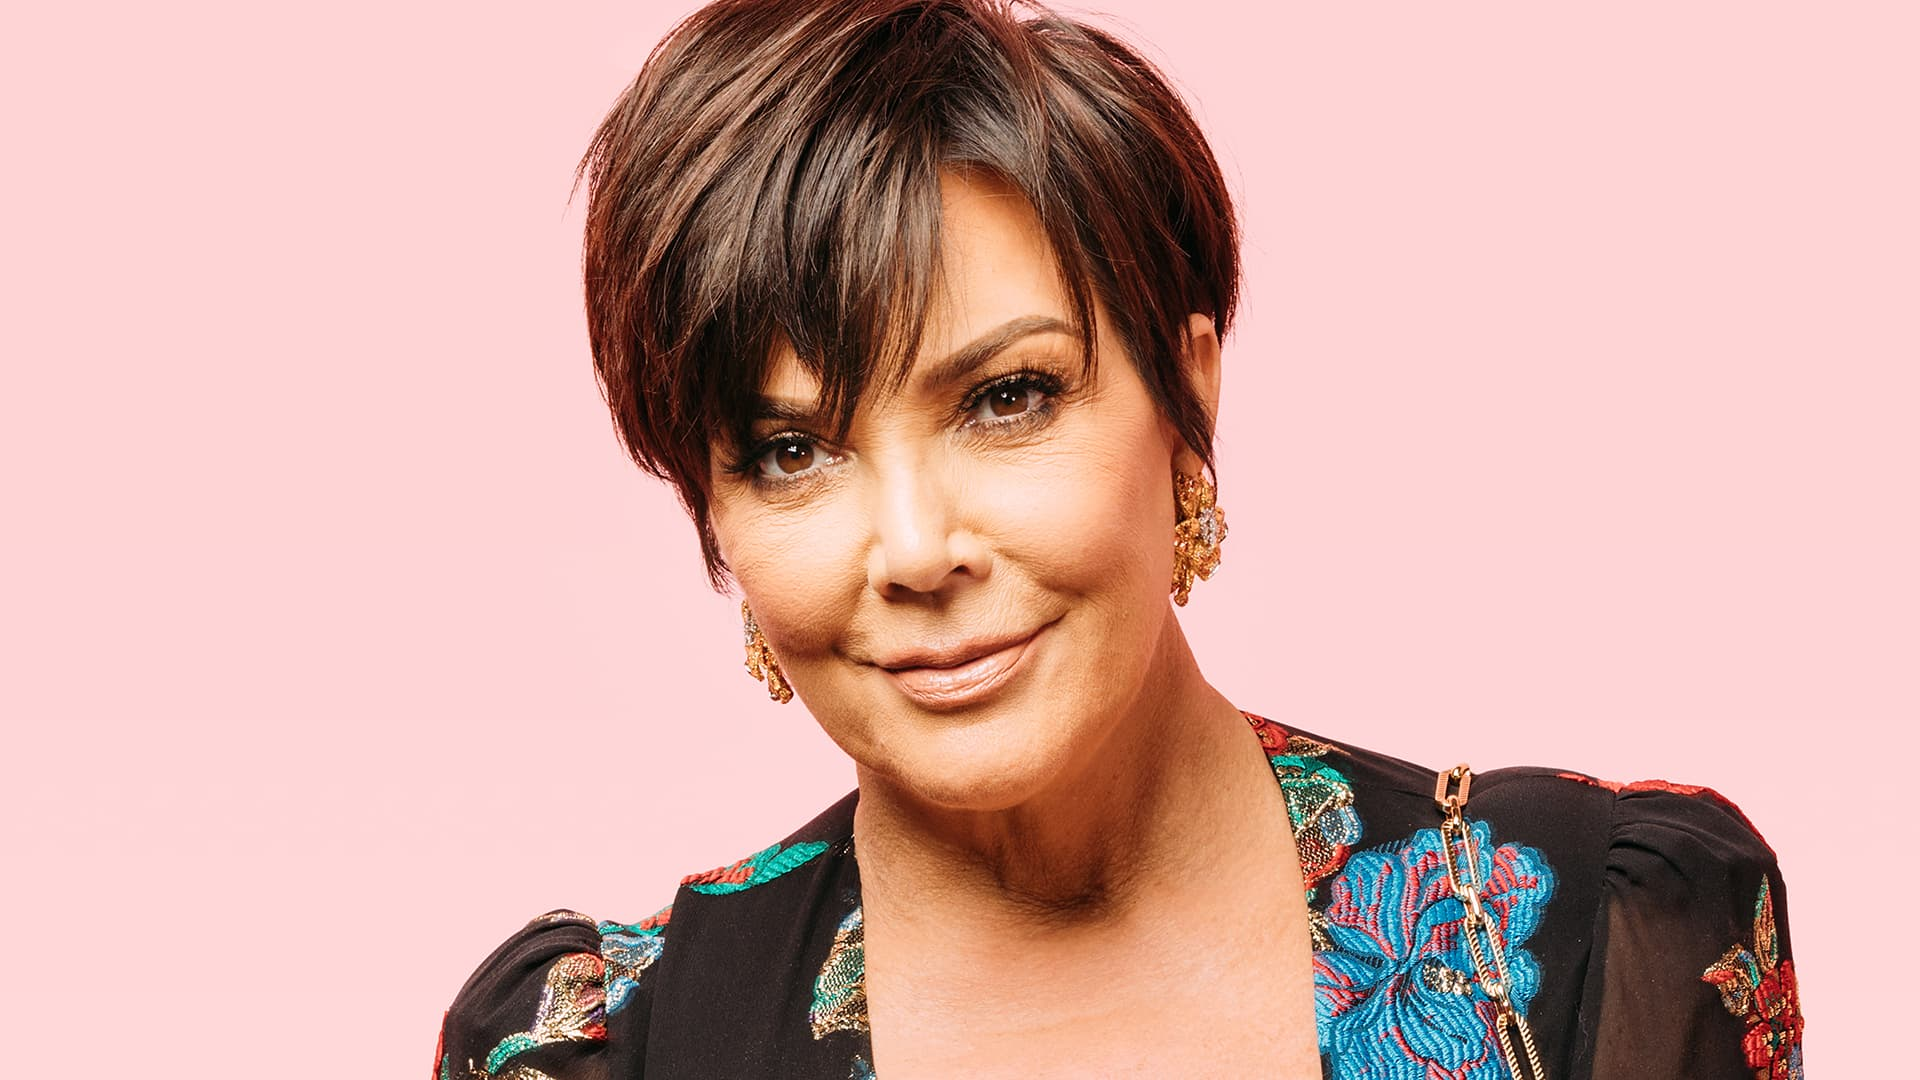 Kris Kardashian Before And After Plastic Surgery 1